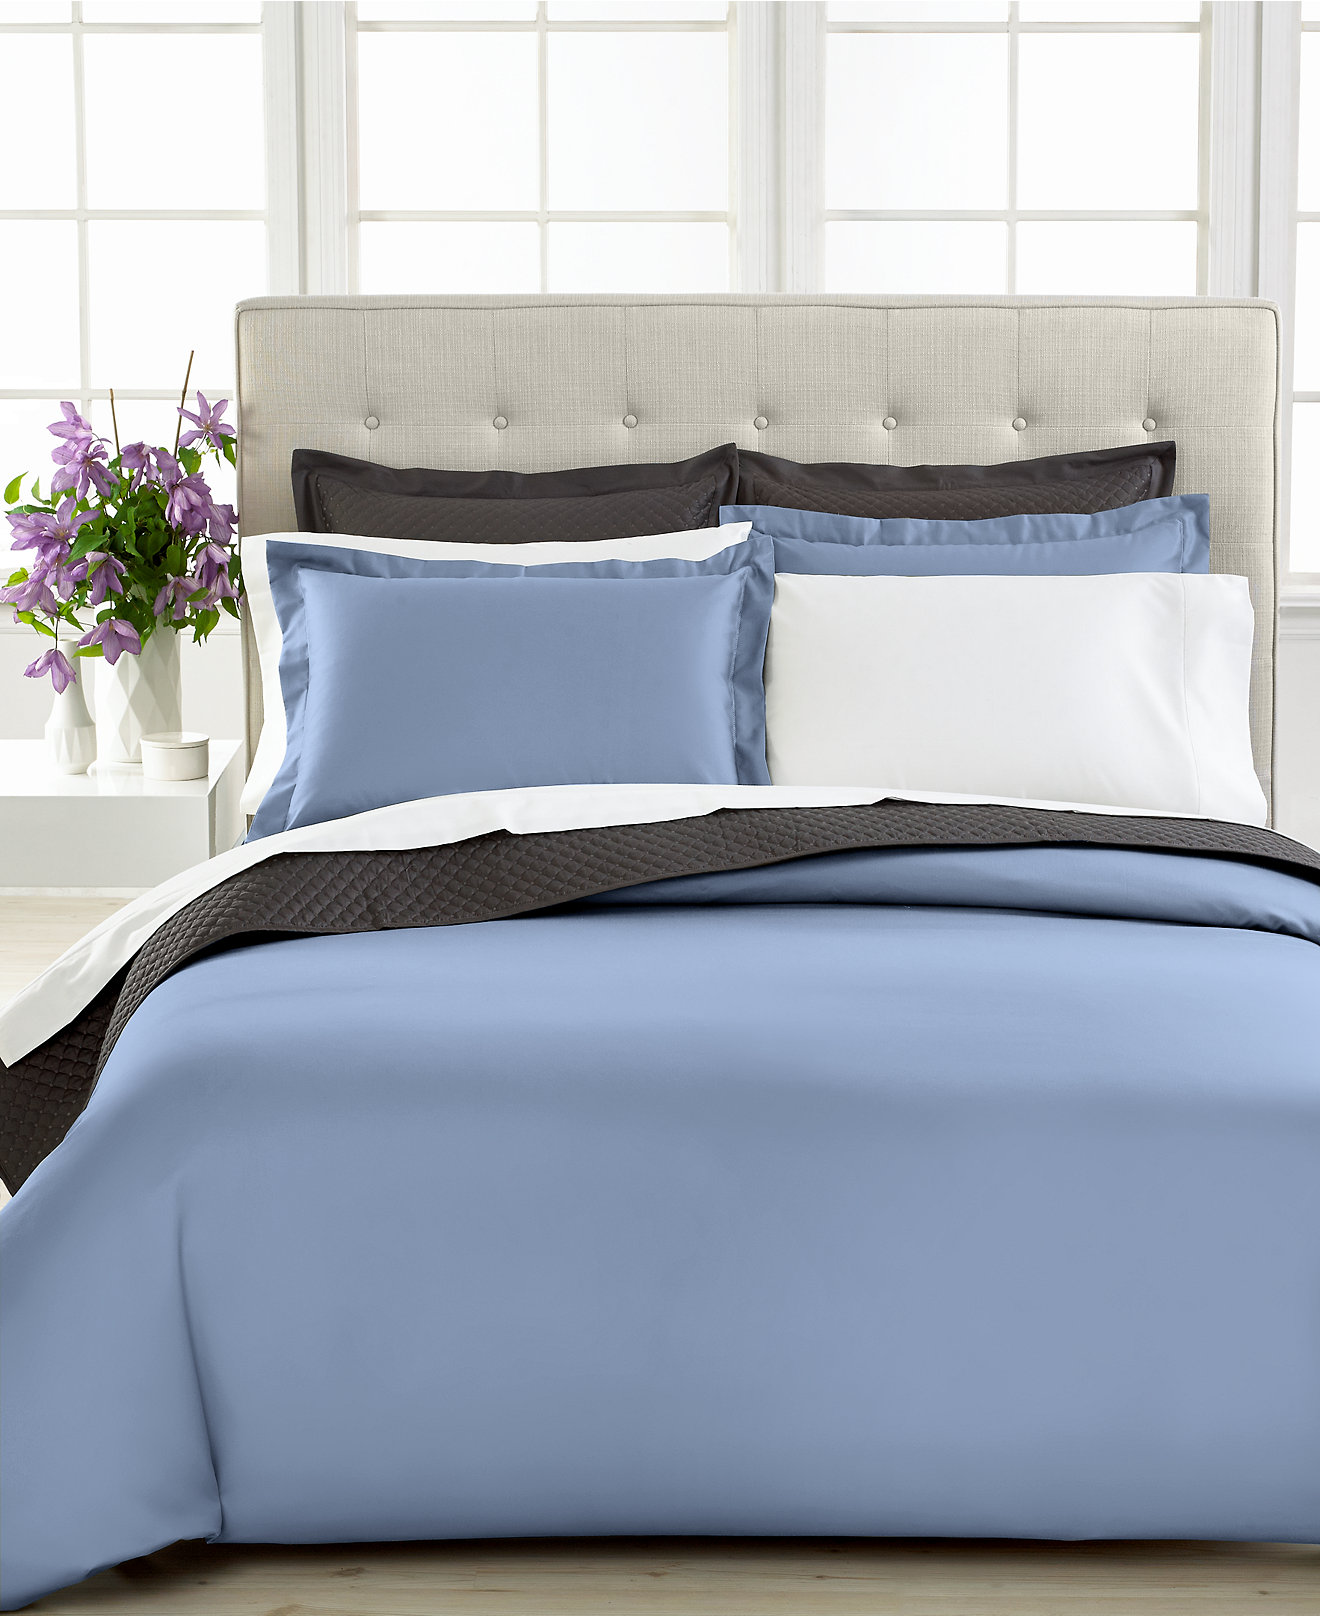 Queen Duvet Covers | Organic Duvet Covers Queen | Twin Duvet Cover